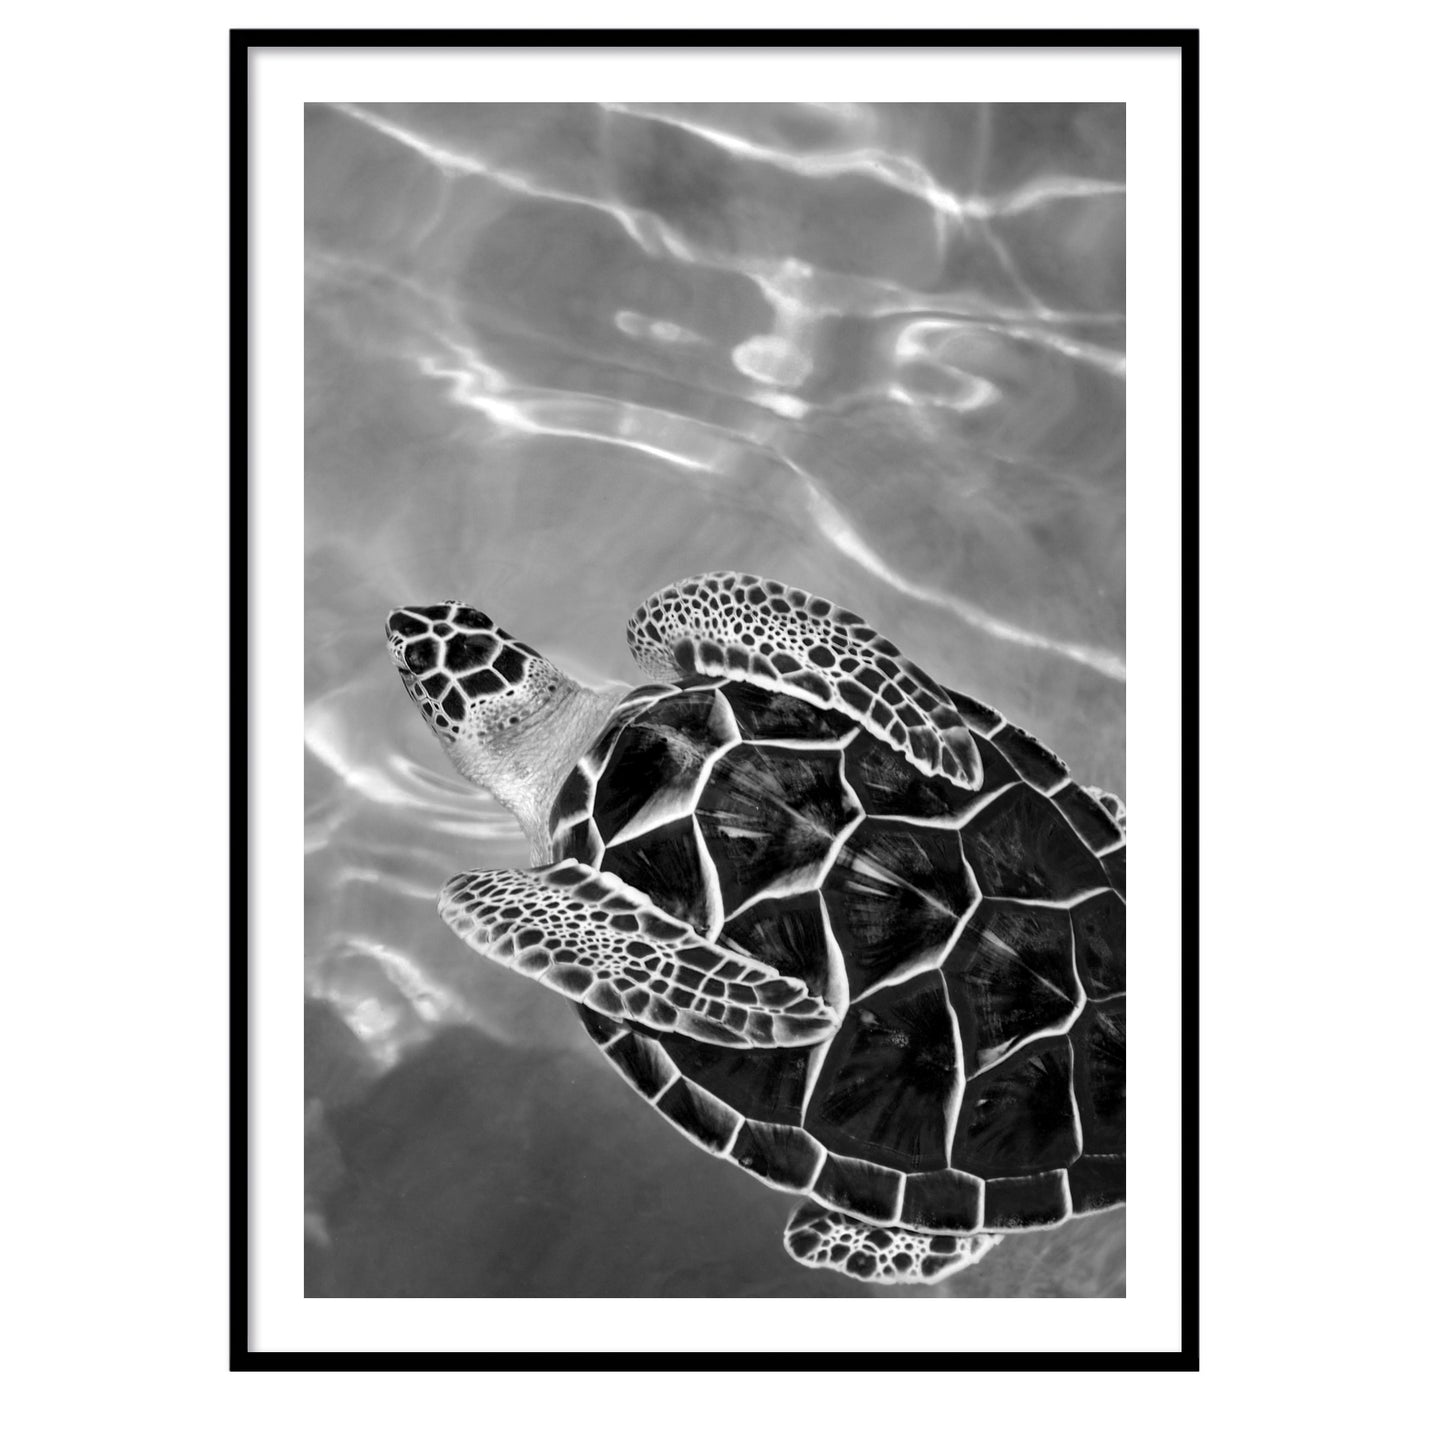 The turtle poster